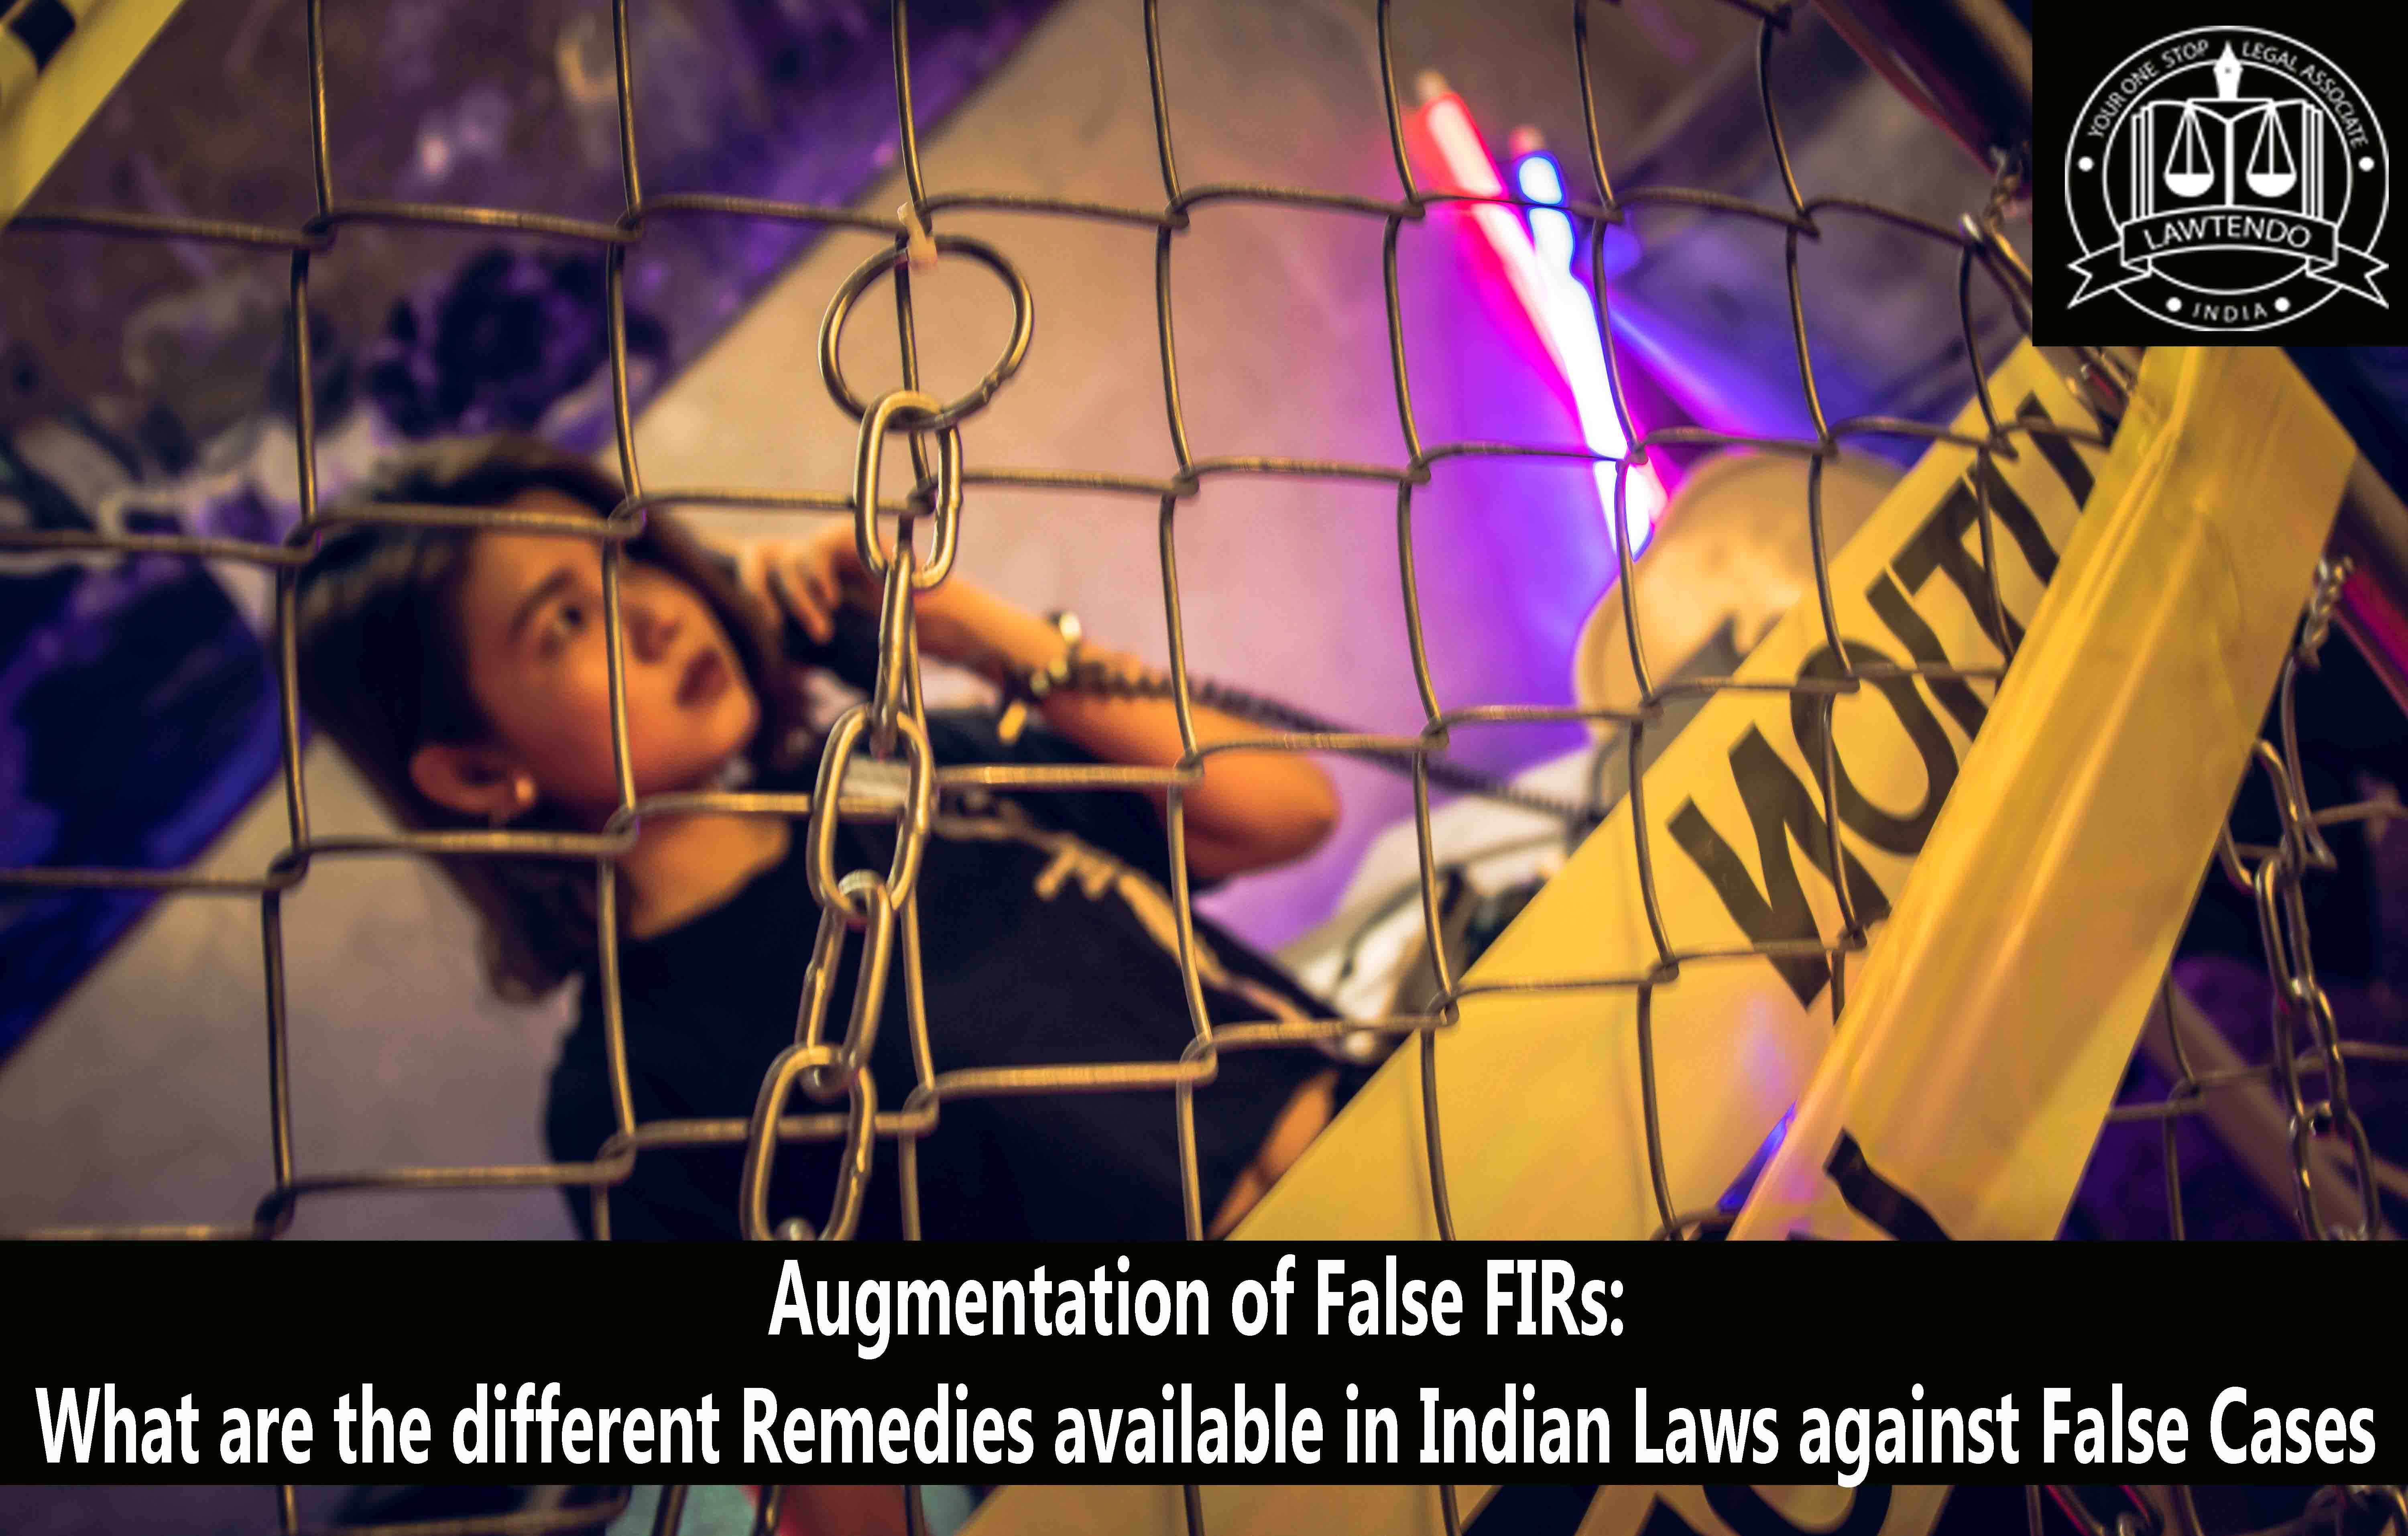 Augmentation of False FIRs: What are the different Remedies available in Indian Laws against False Cases